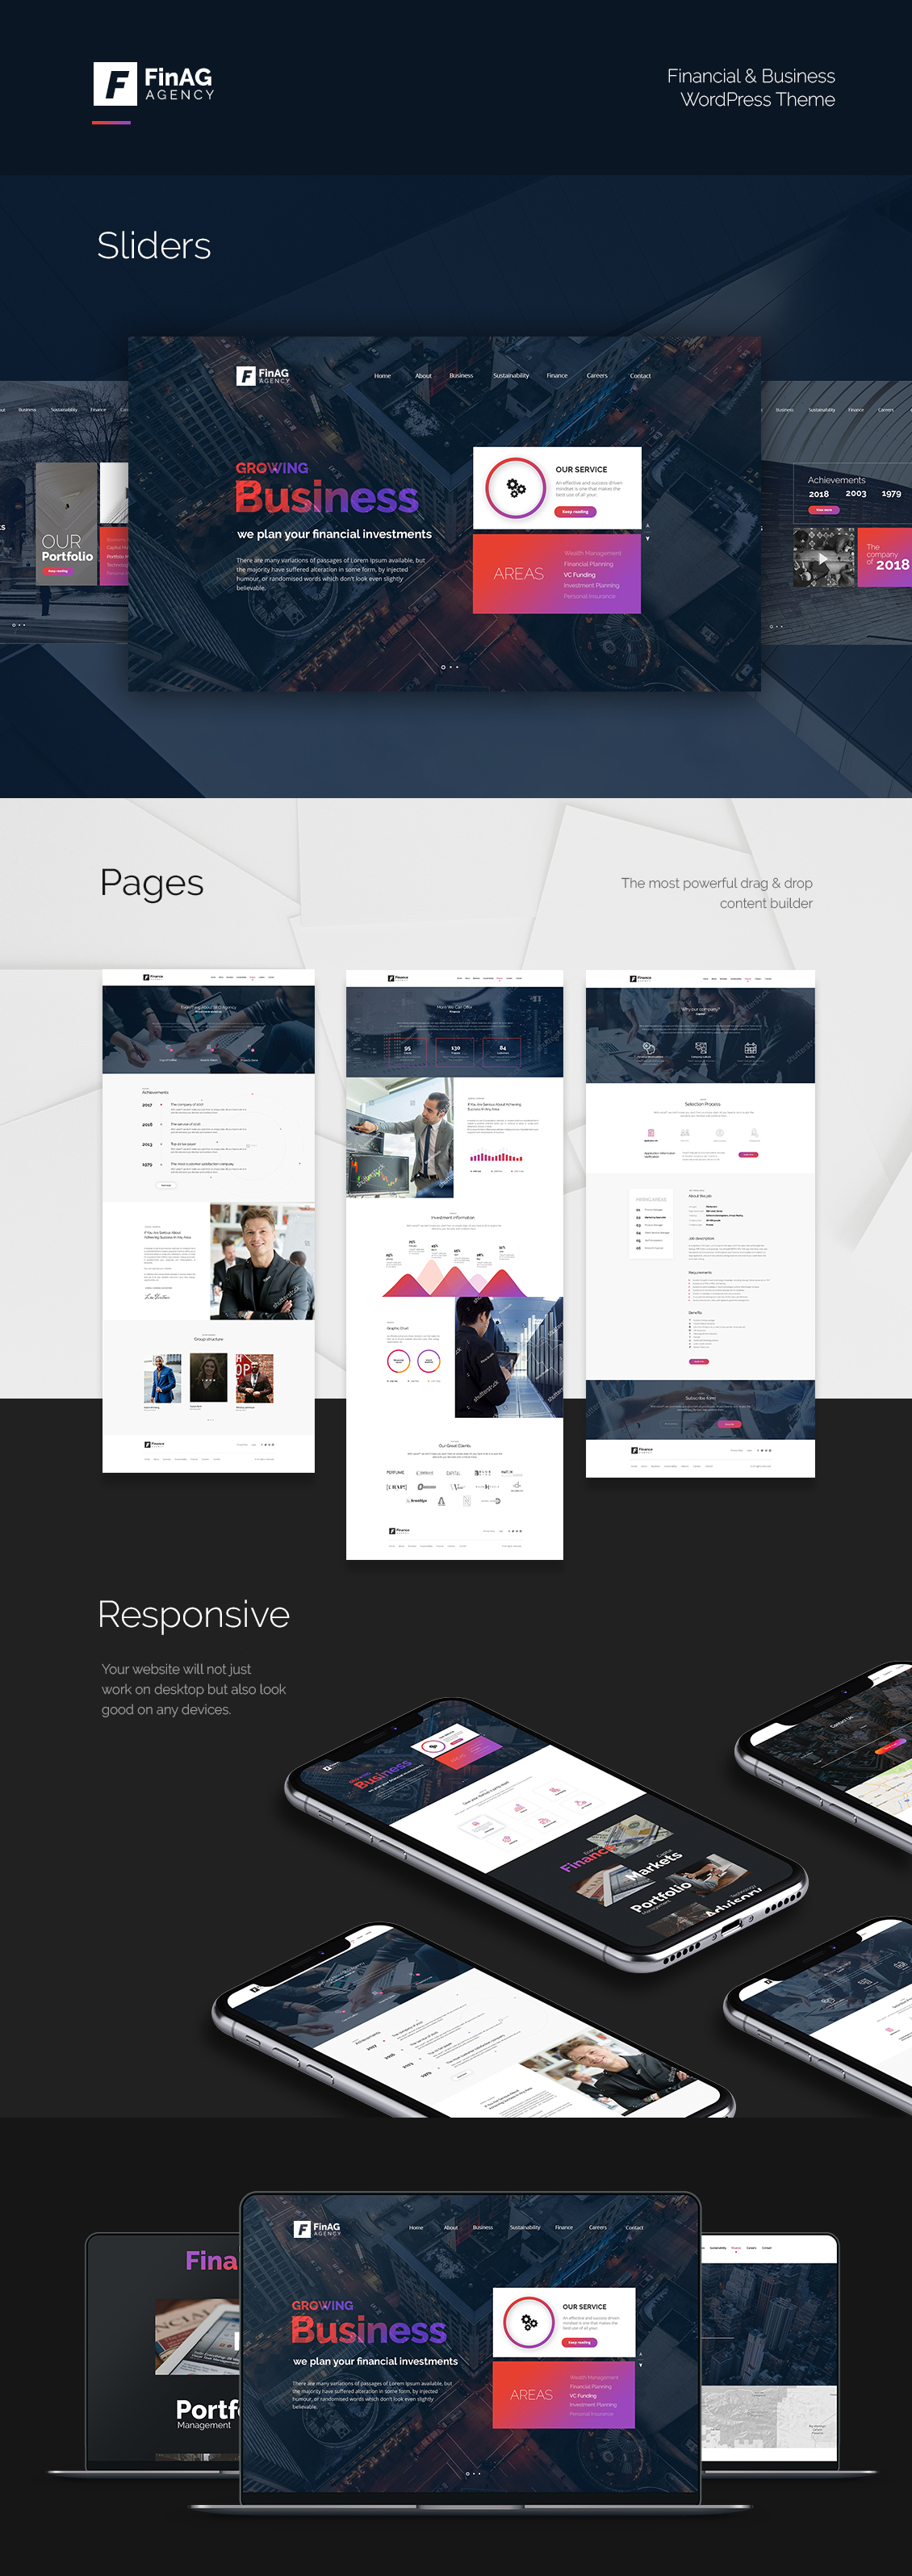 FinAg WordPress Theme